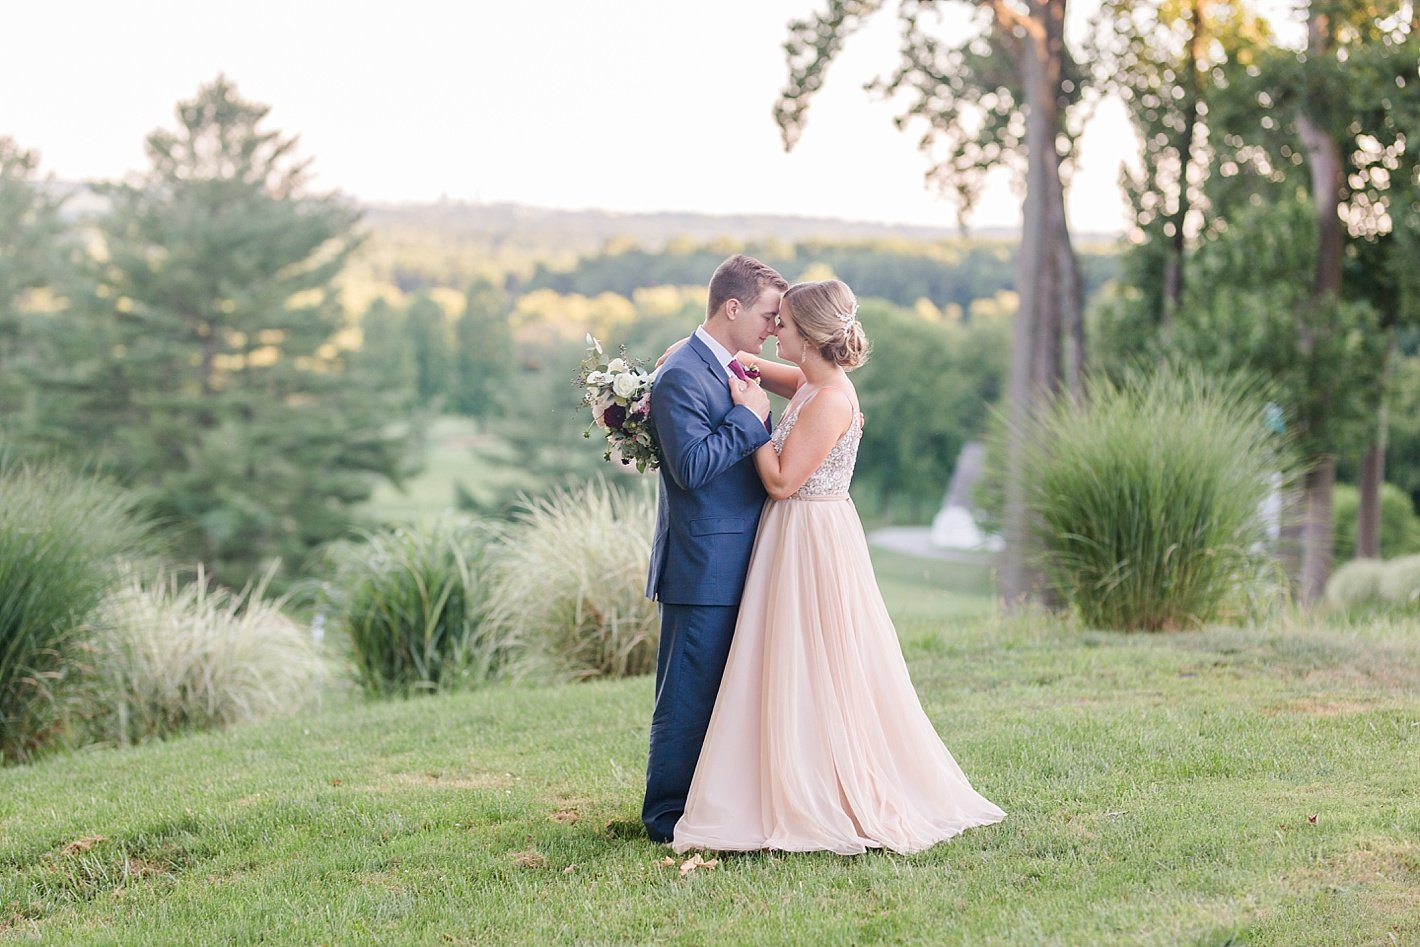 Eagles Nest Country Club wedding photography, arpasi photography, bride and groom portraits